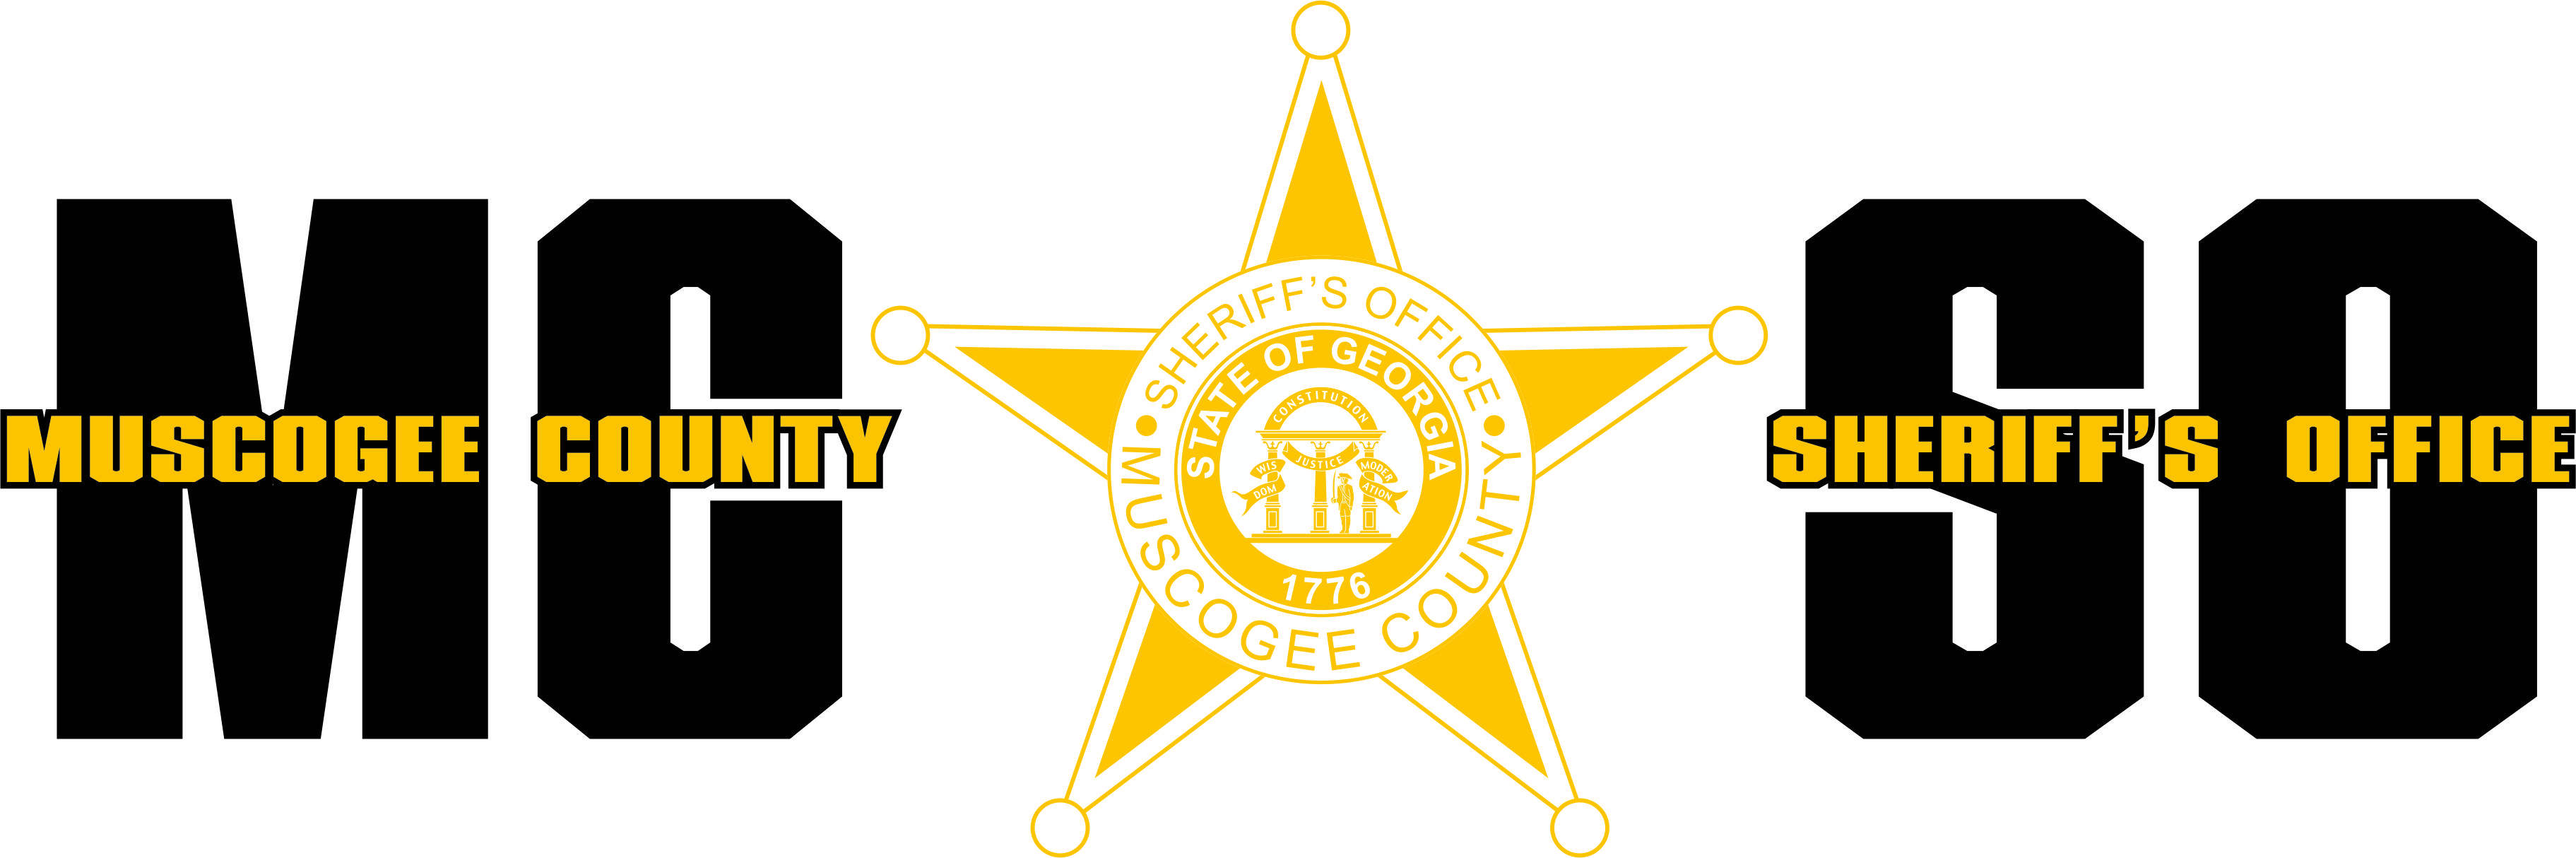 Muscogee County Sheriff's Office, GA Police Jobs